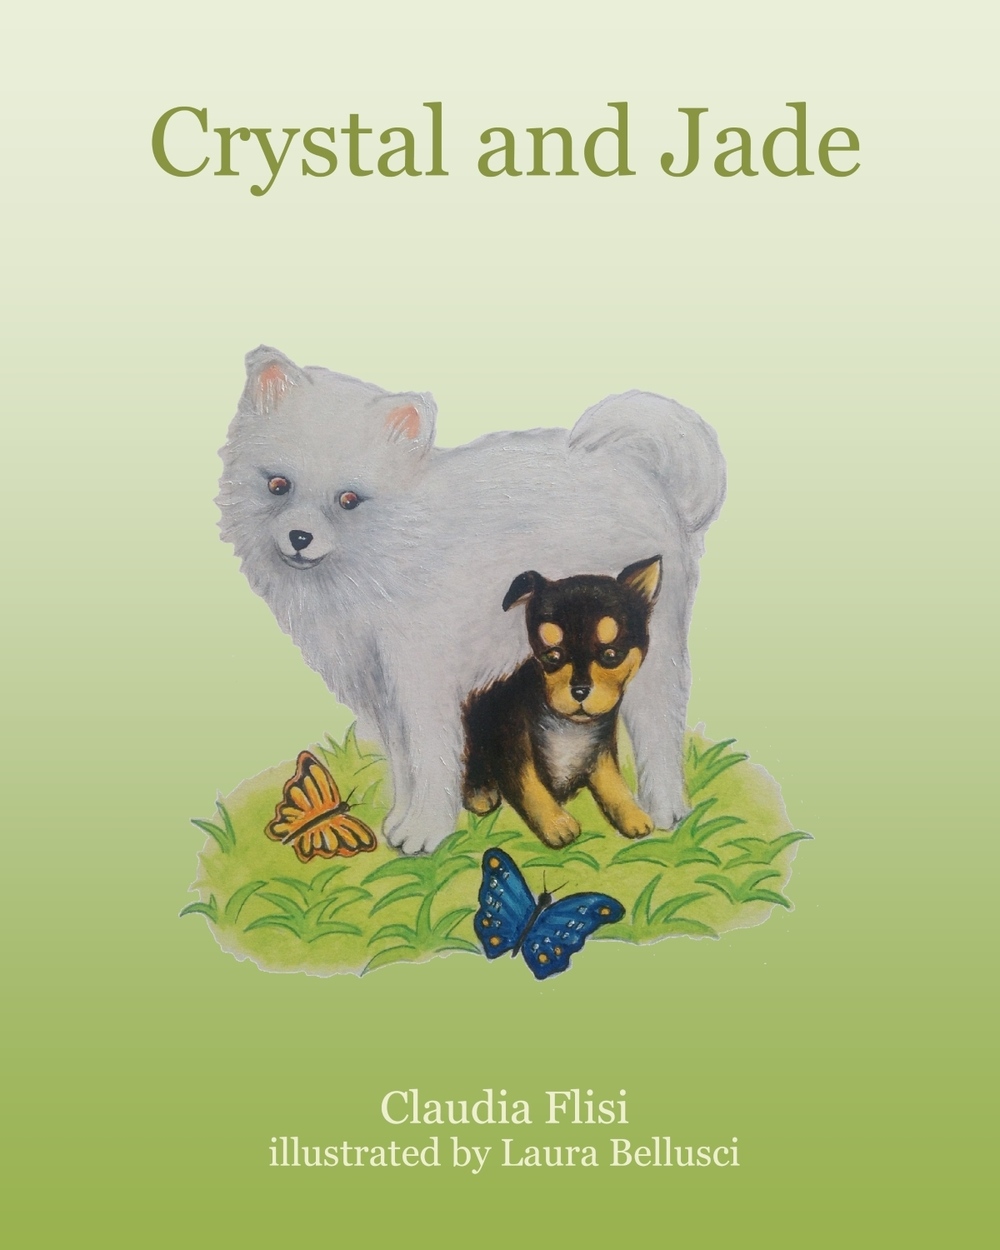 Crystal and Jade  by Claudia Flisi